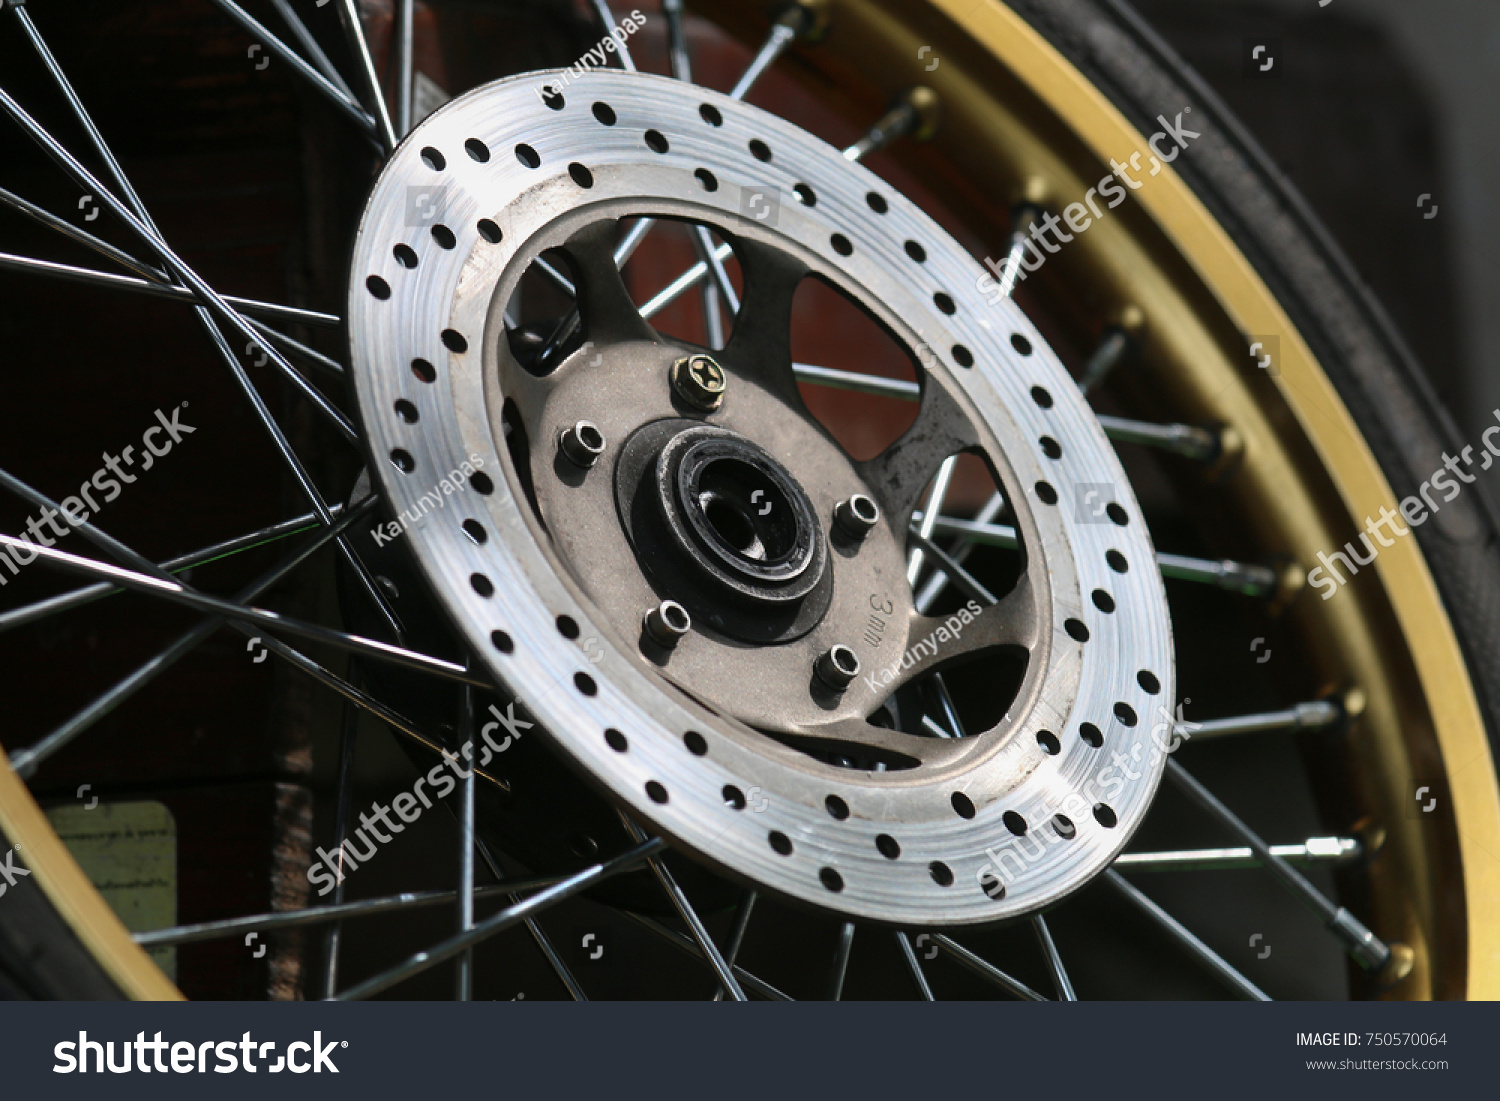 Light Shadow Disc Brakes Motorcycle Stock Photo Edit Now 750570064 And With